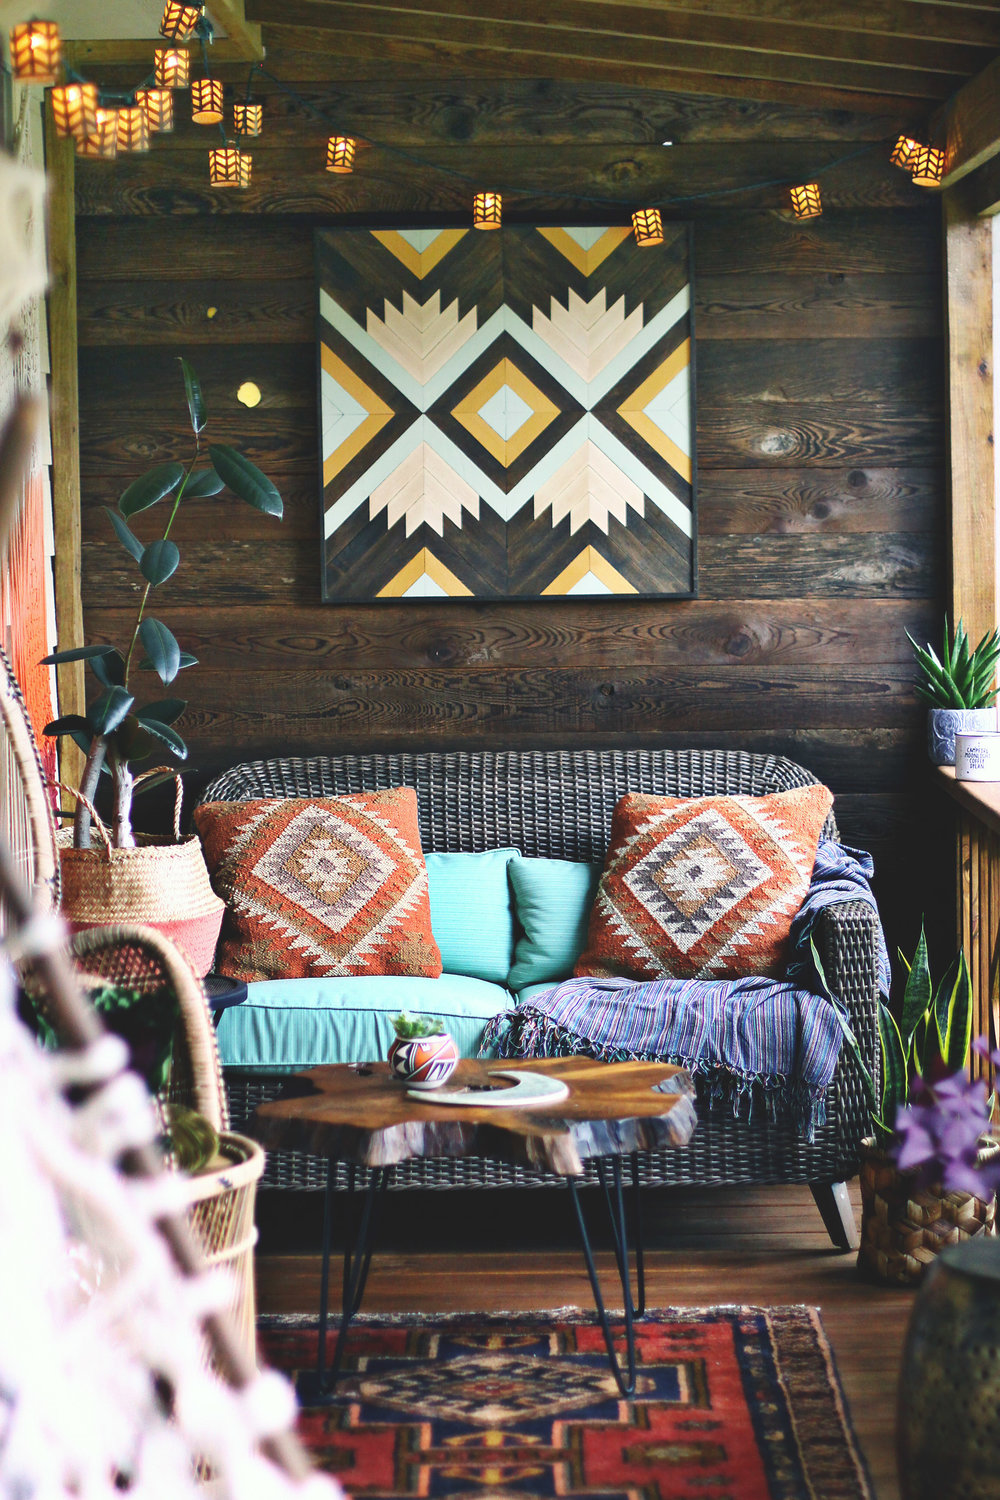 The Boho Porch Makeover at bohocollective.com